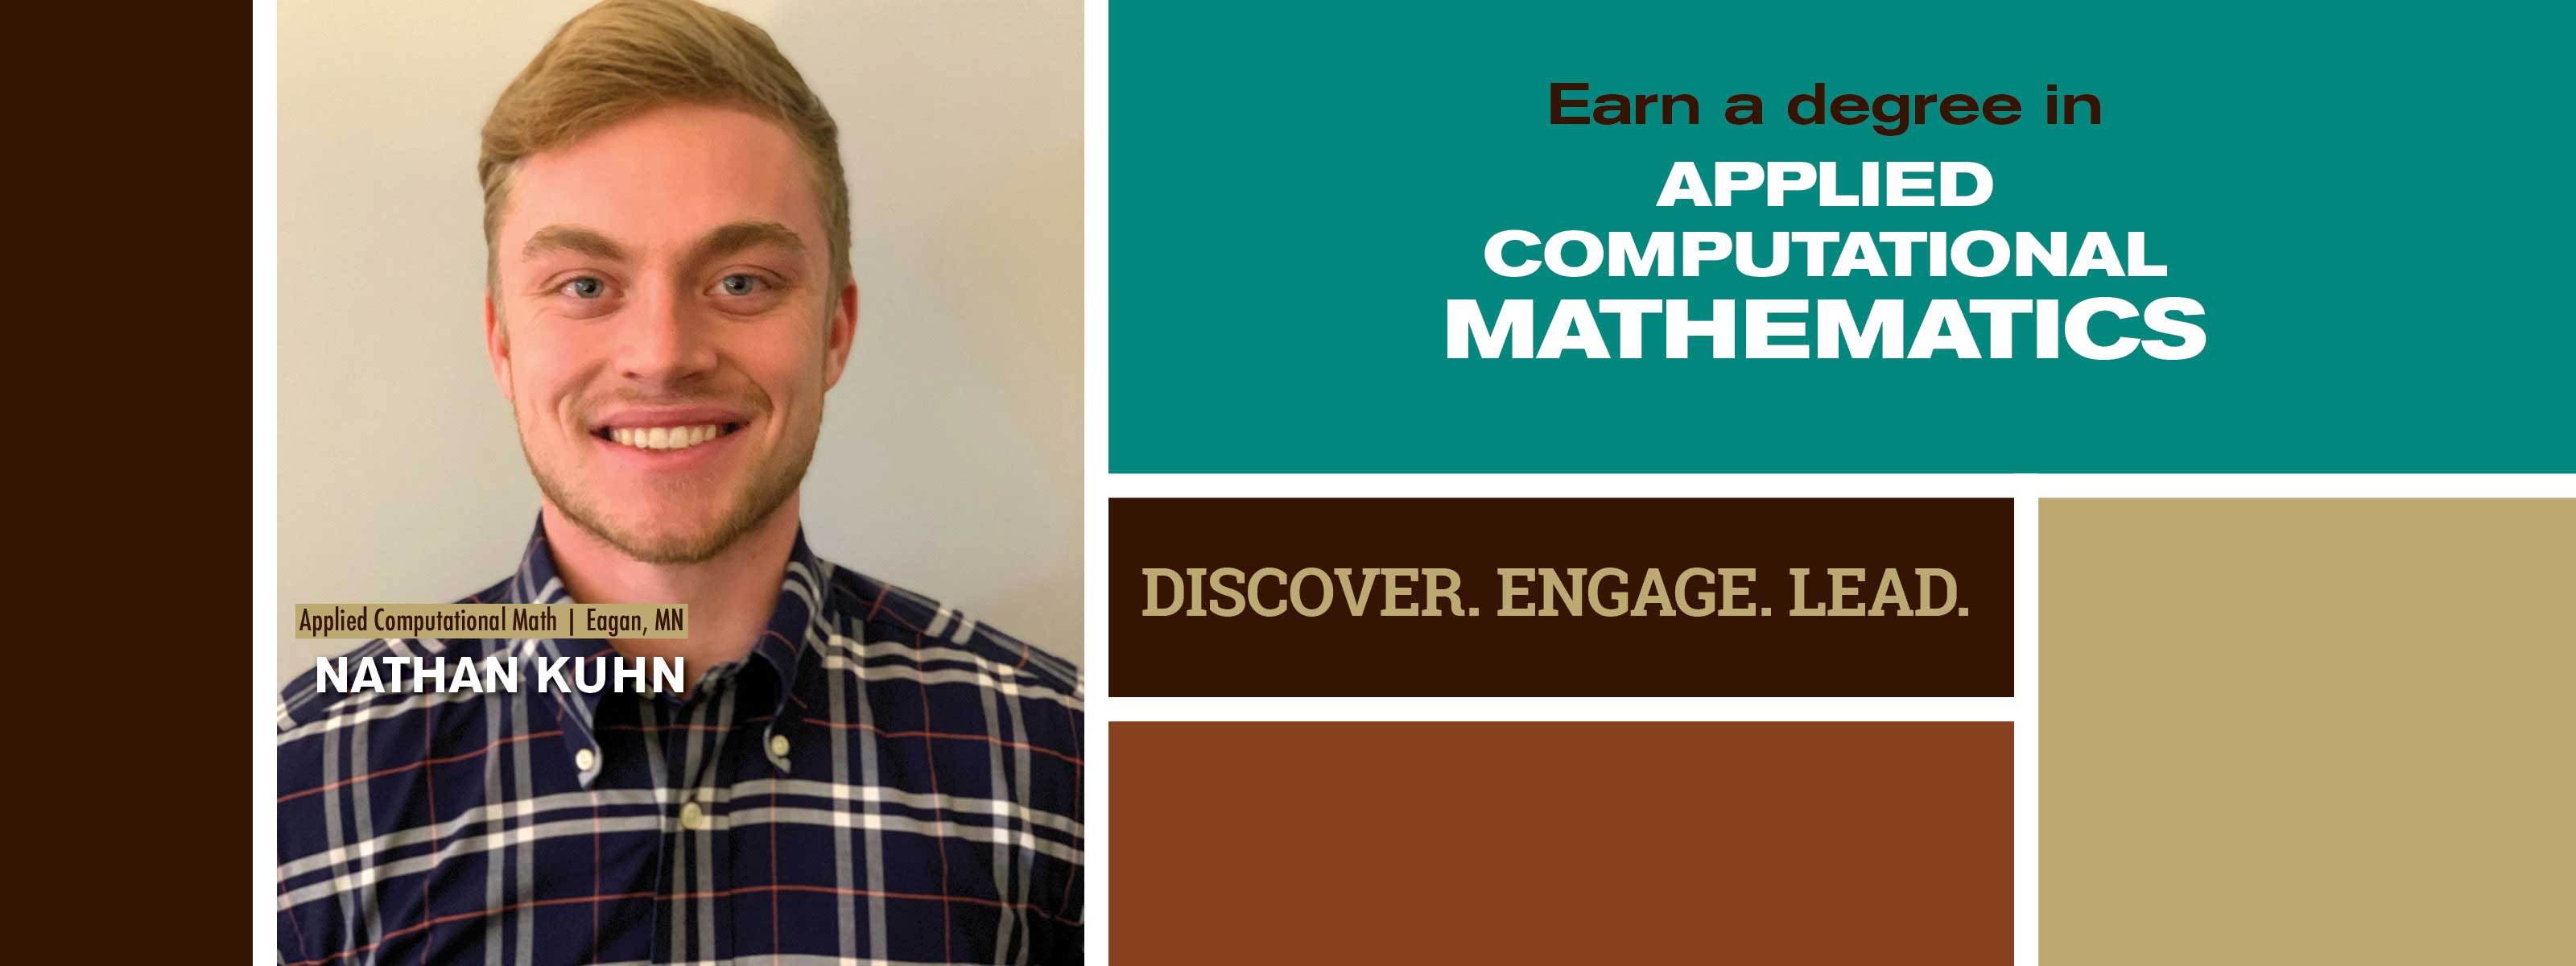 Earn A Degree In Applied Computational Mathematics - Discover. Engage. Lead.